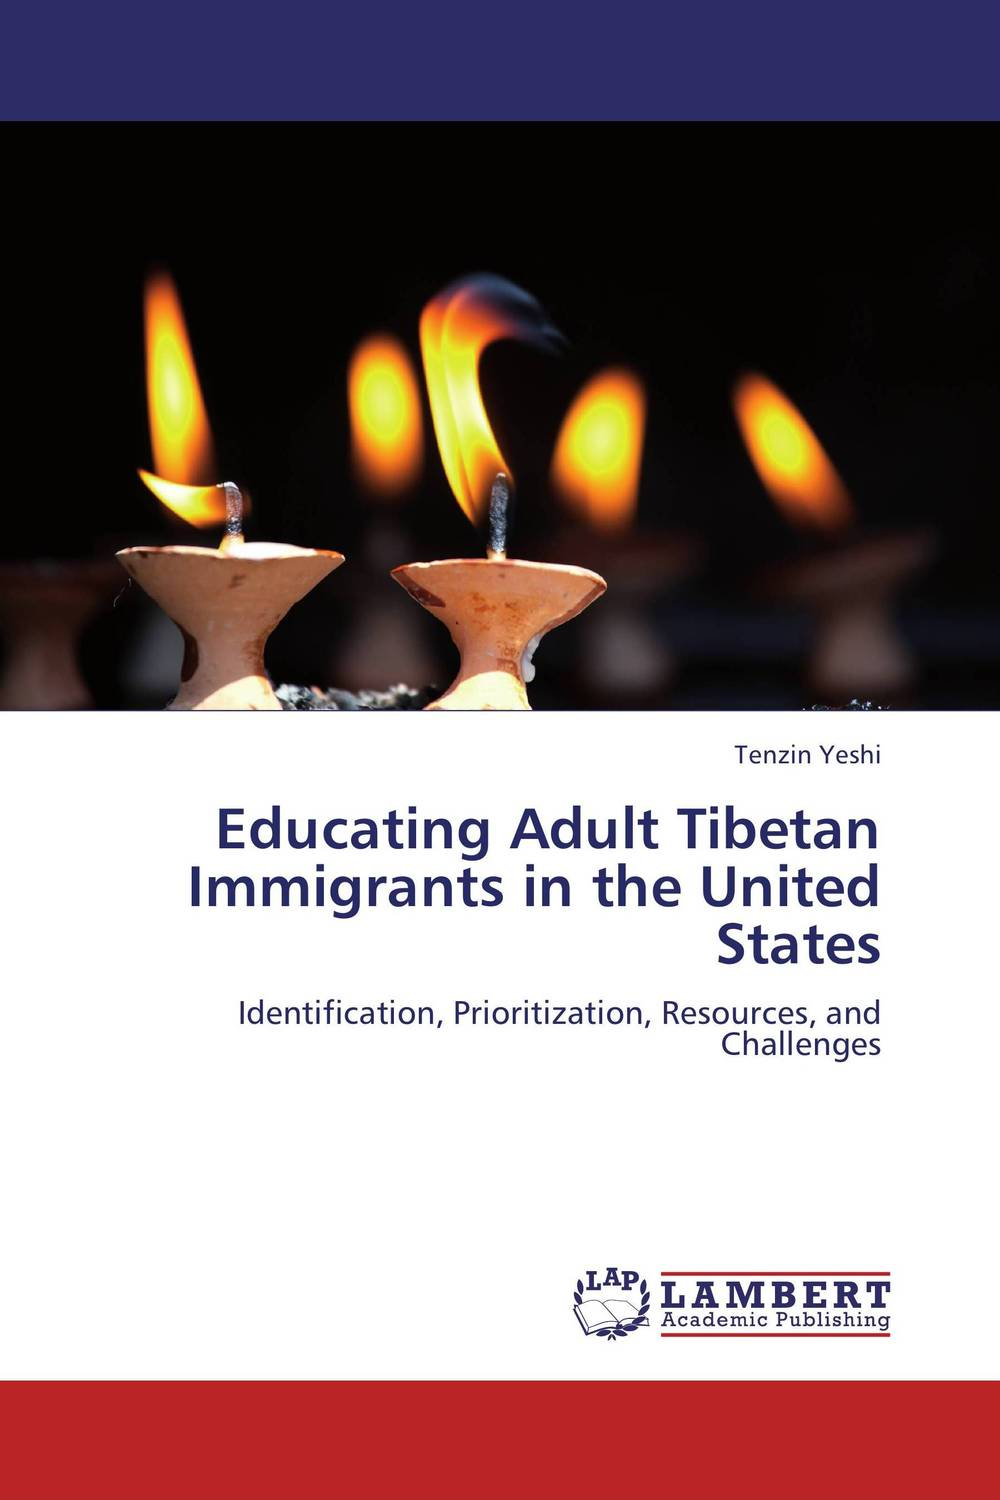 Educating Adult Tibetan Immigrants in the United States fatal misconception – the struggle to control world population